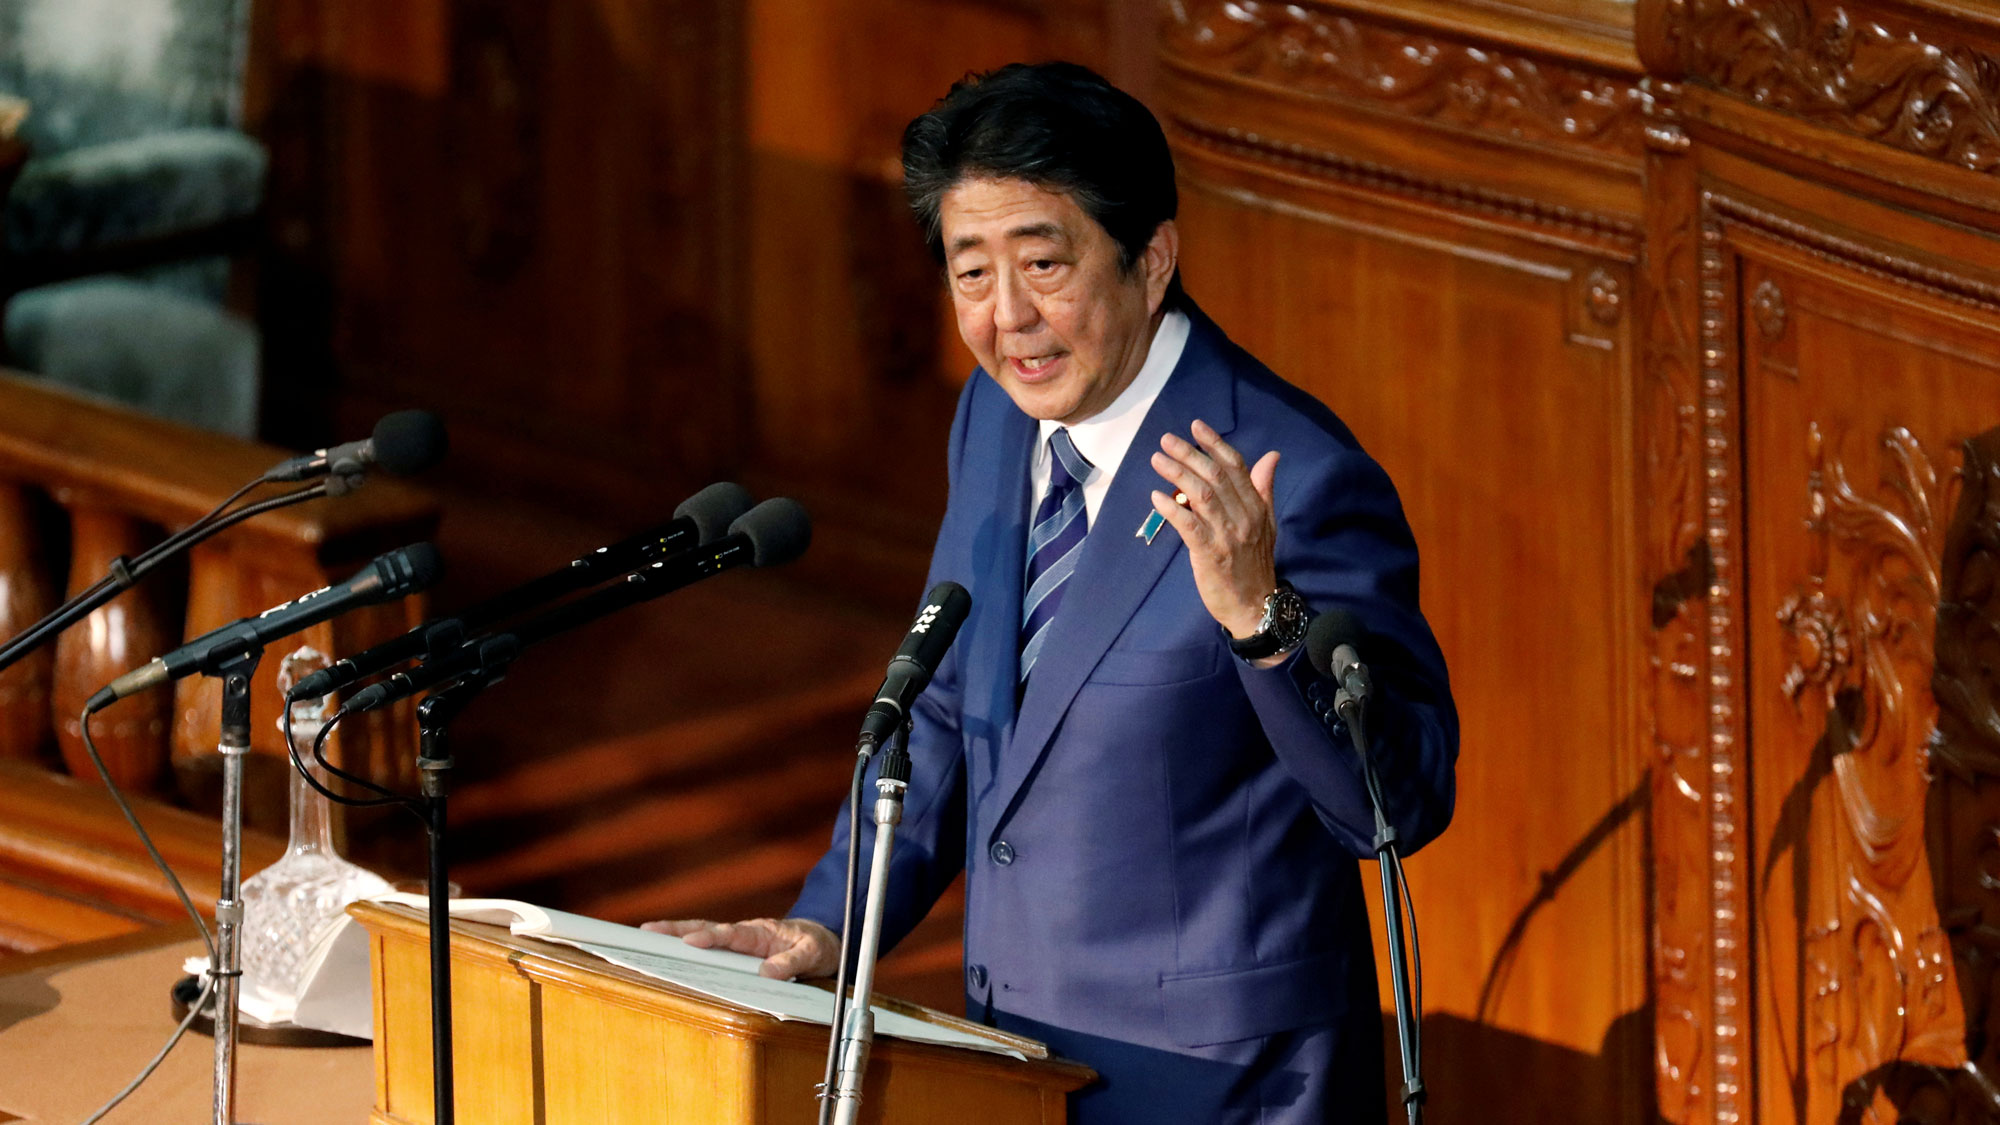 Japan's Prime Minister Shinzo Abe is shown standing at a podium with his left hand raised delivering a policy speech.